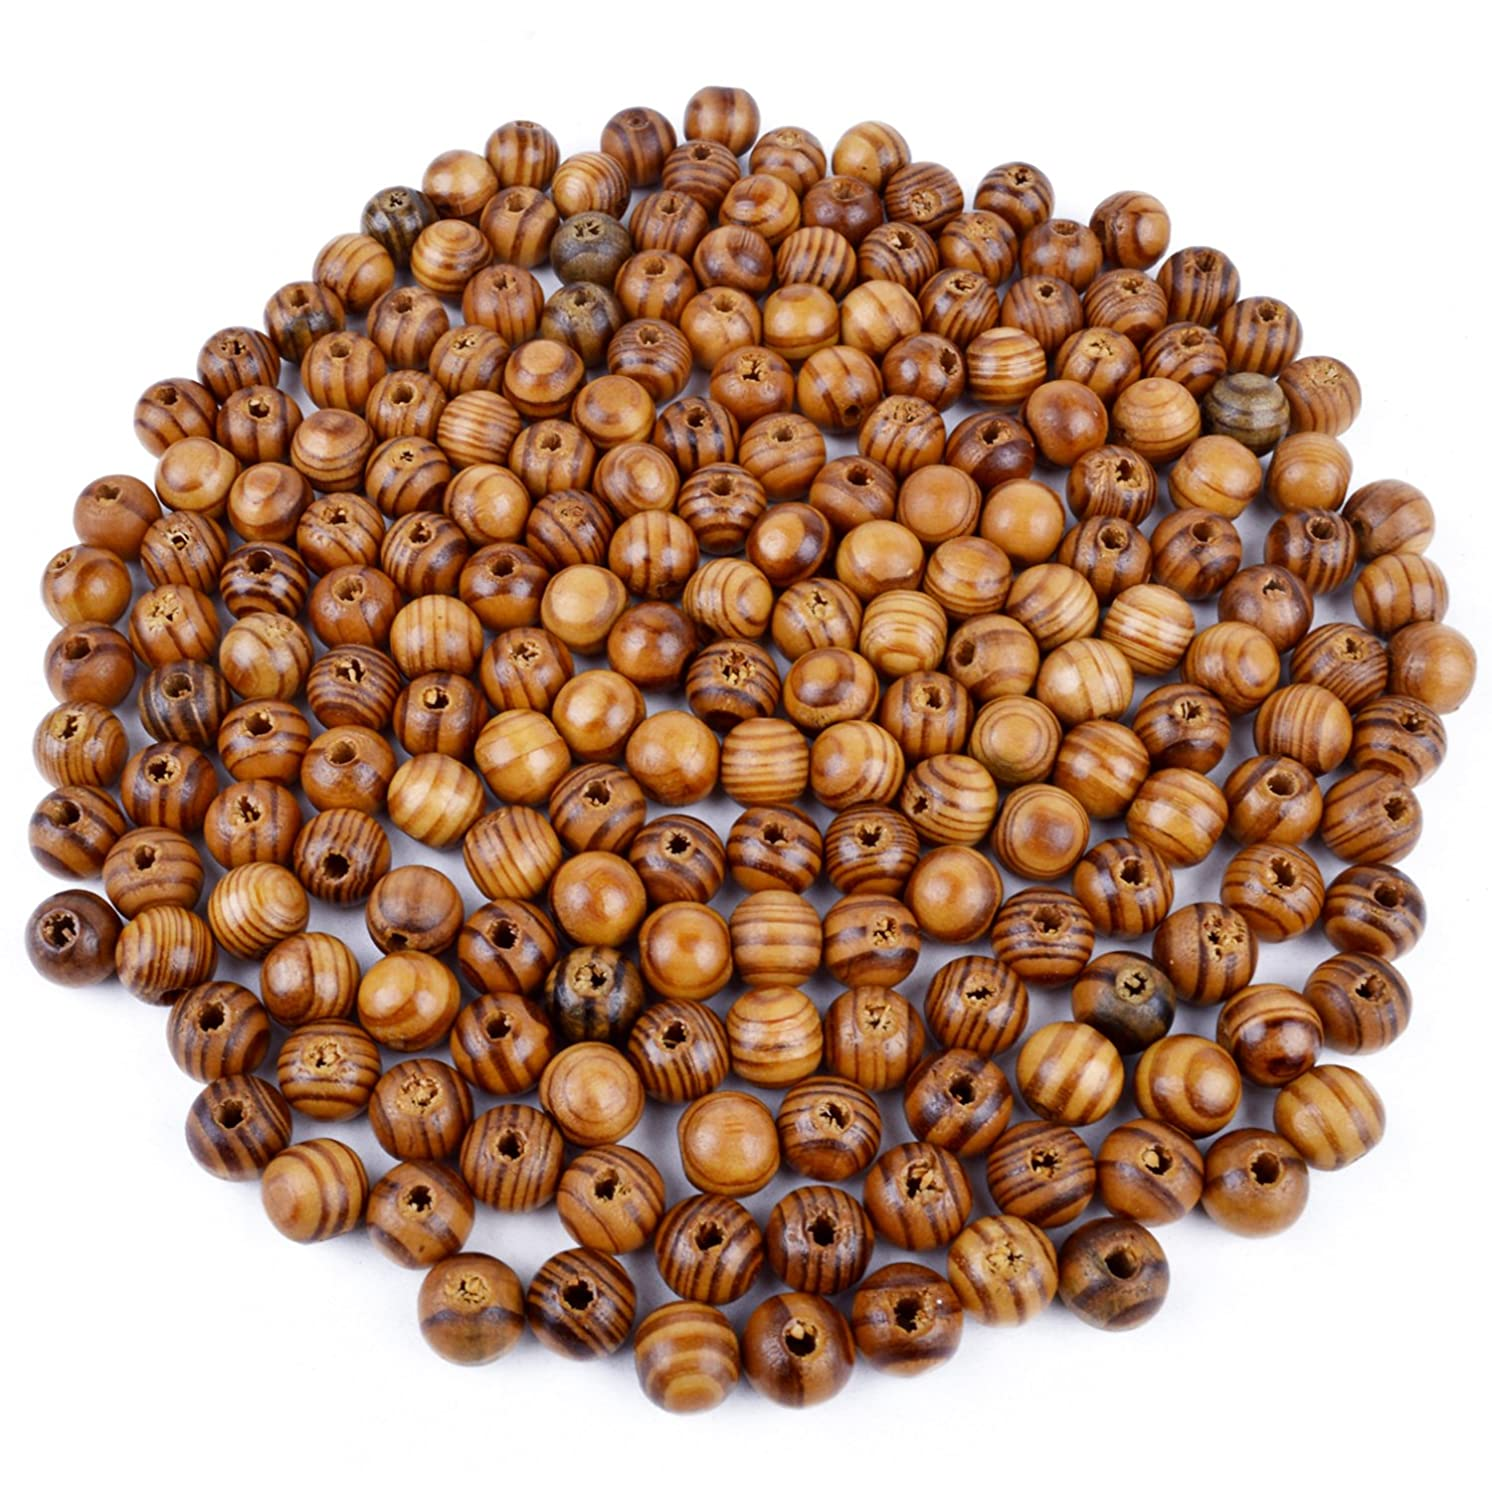 BronaGrand 200pcs 12mm Wood Round Bead Natural Wood Spacer Beads Wooden Beads for Jewelry Making DIY